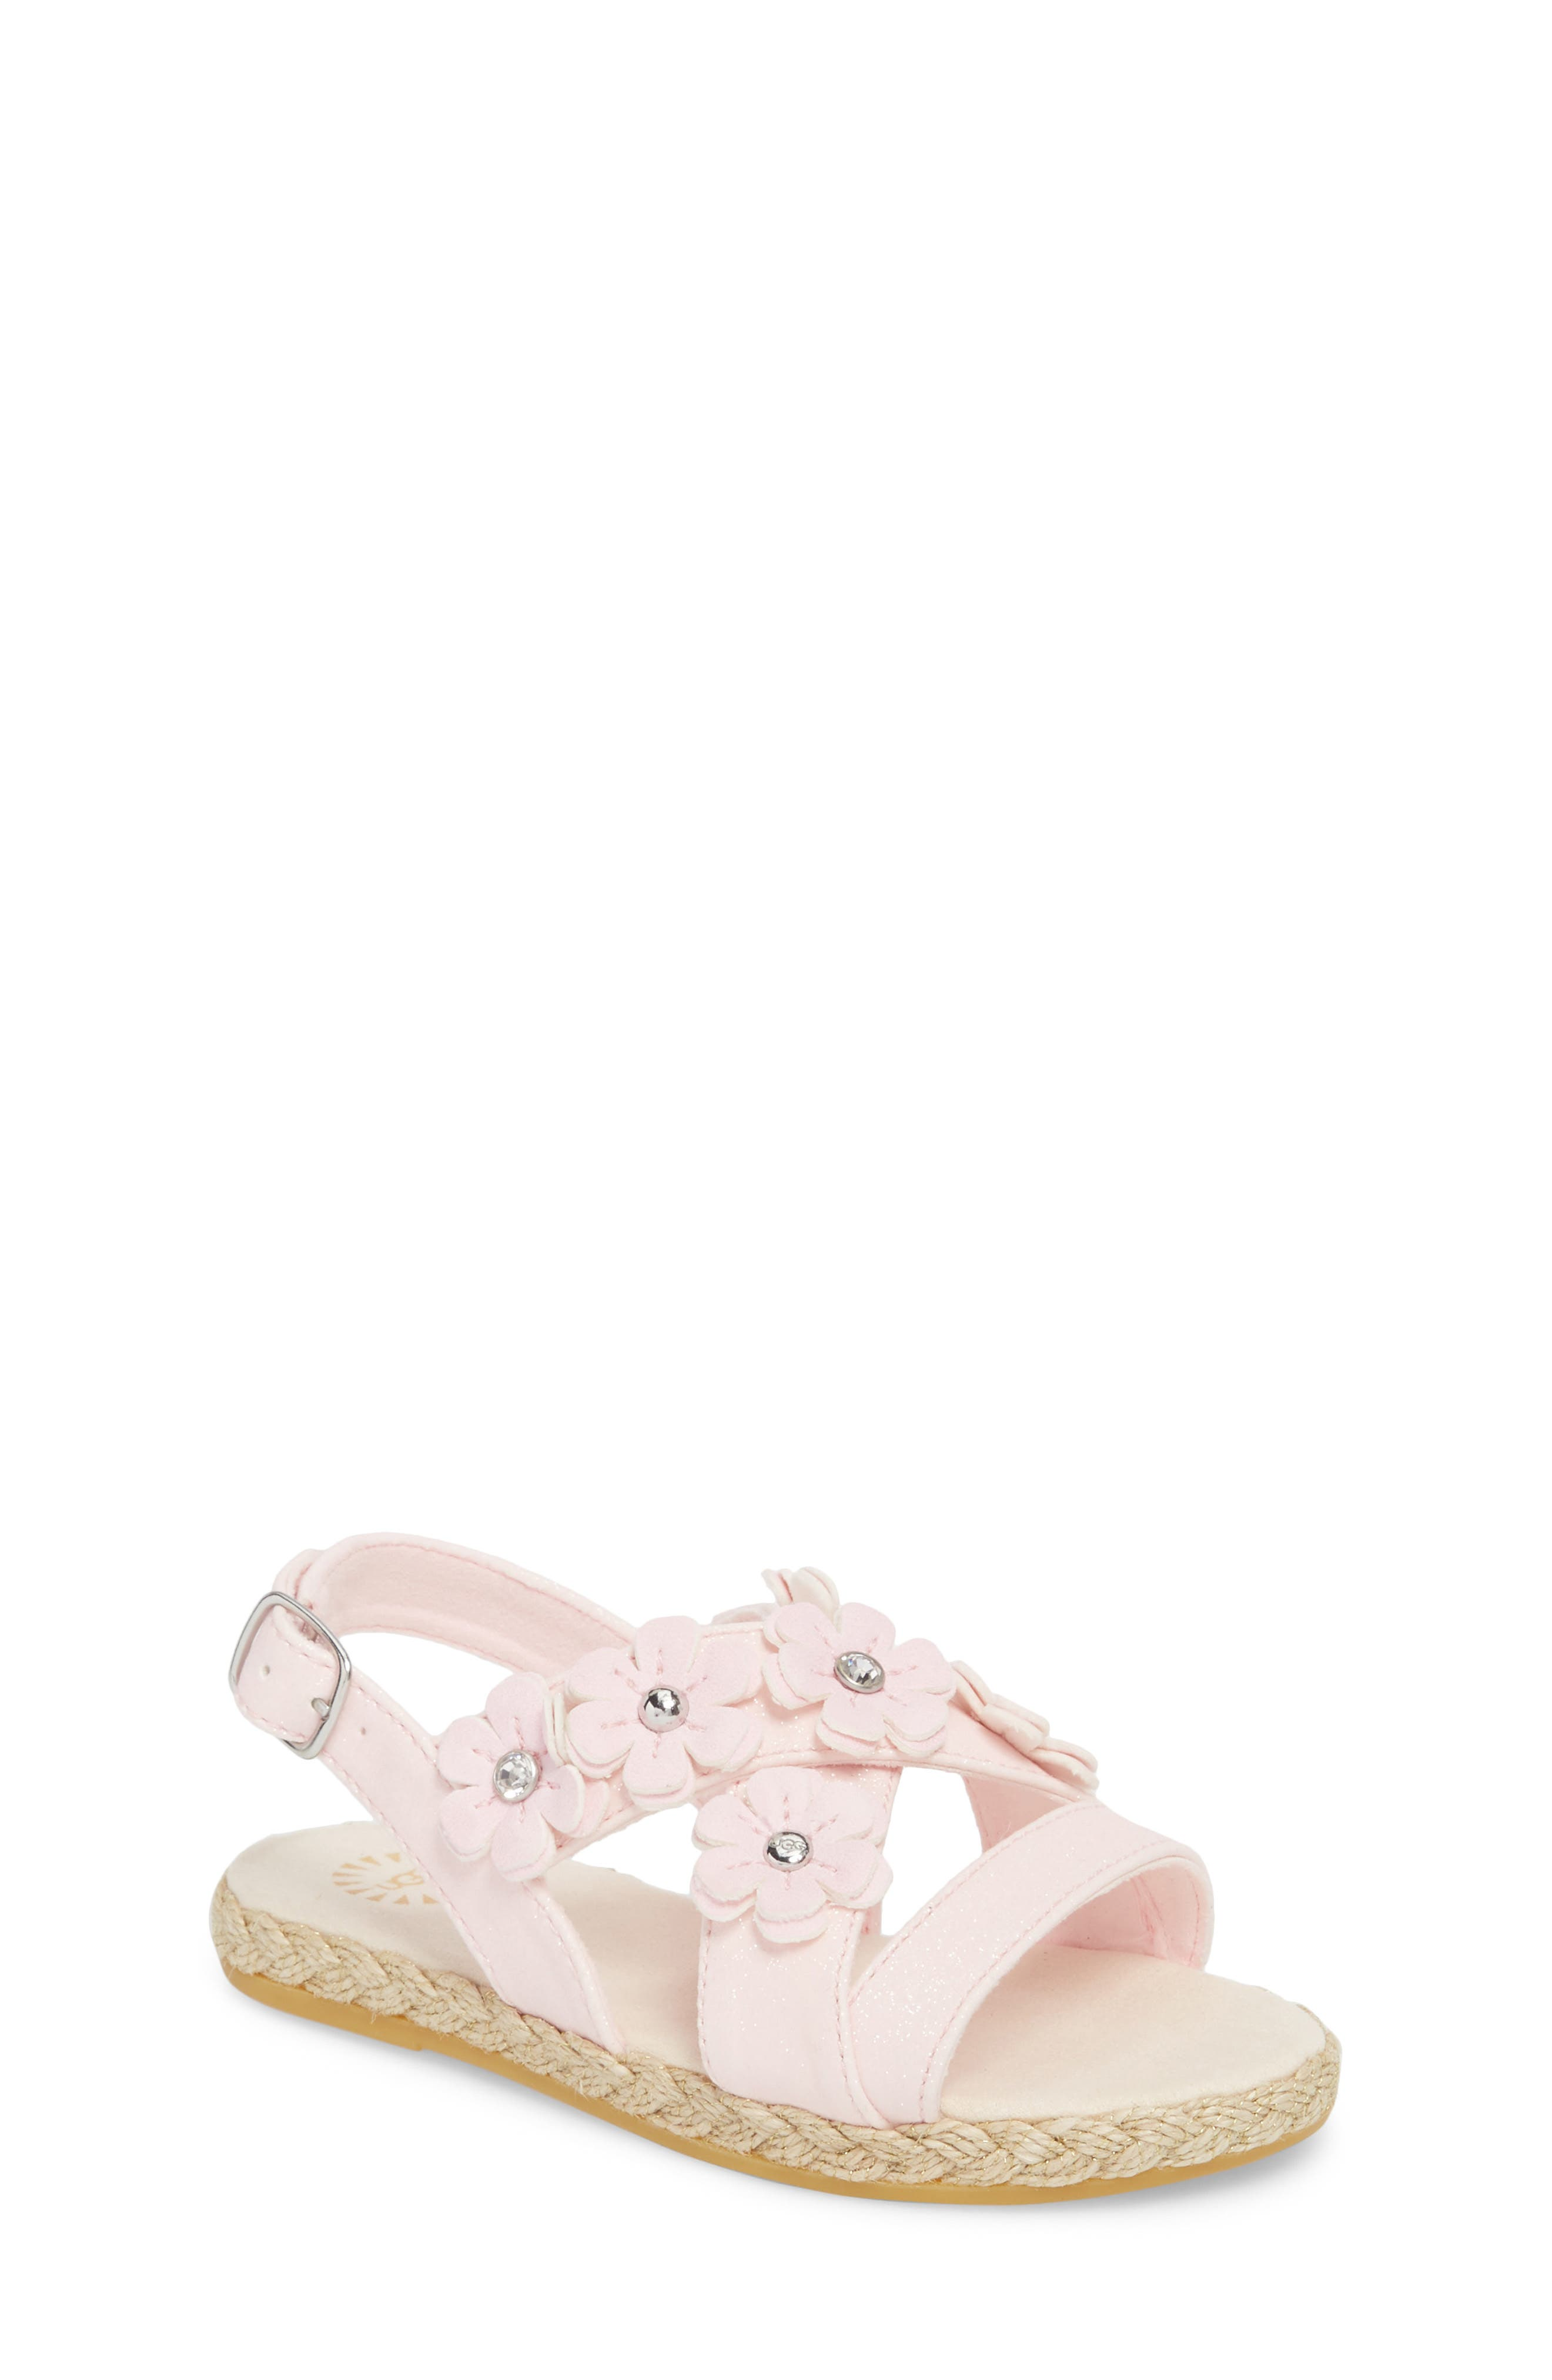 Allairey Sparkles Espadrille Sandal,                         Main,                         color, SEASHELL PINK